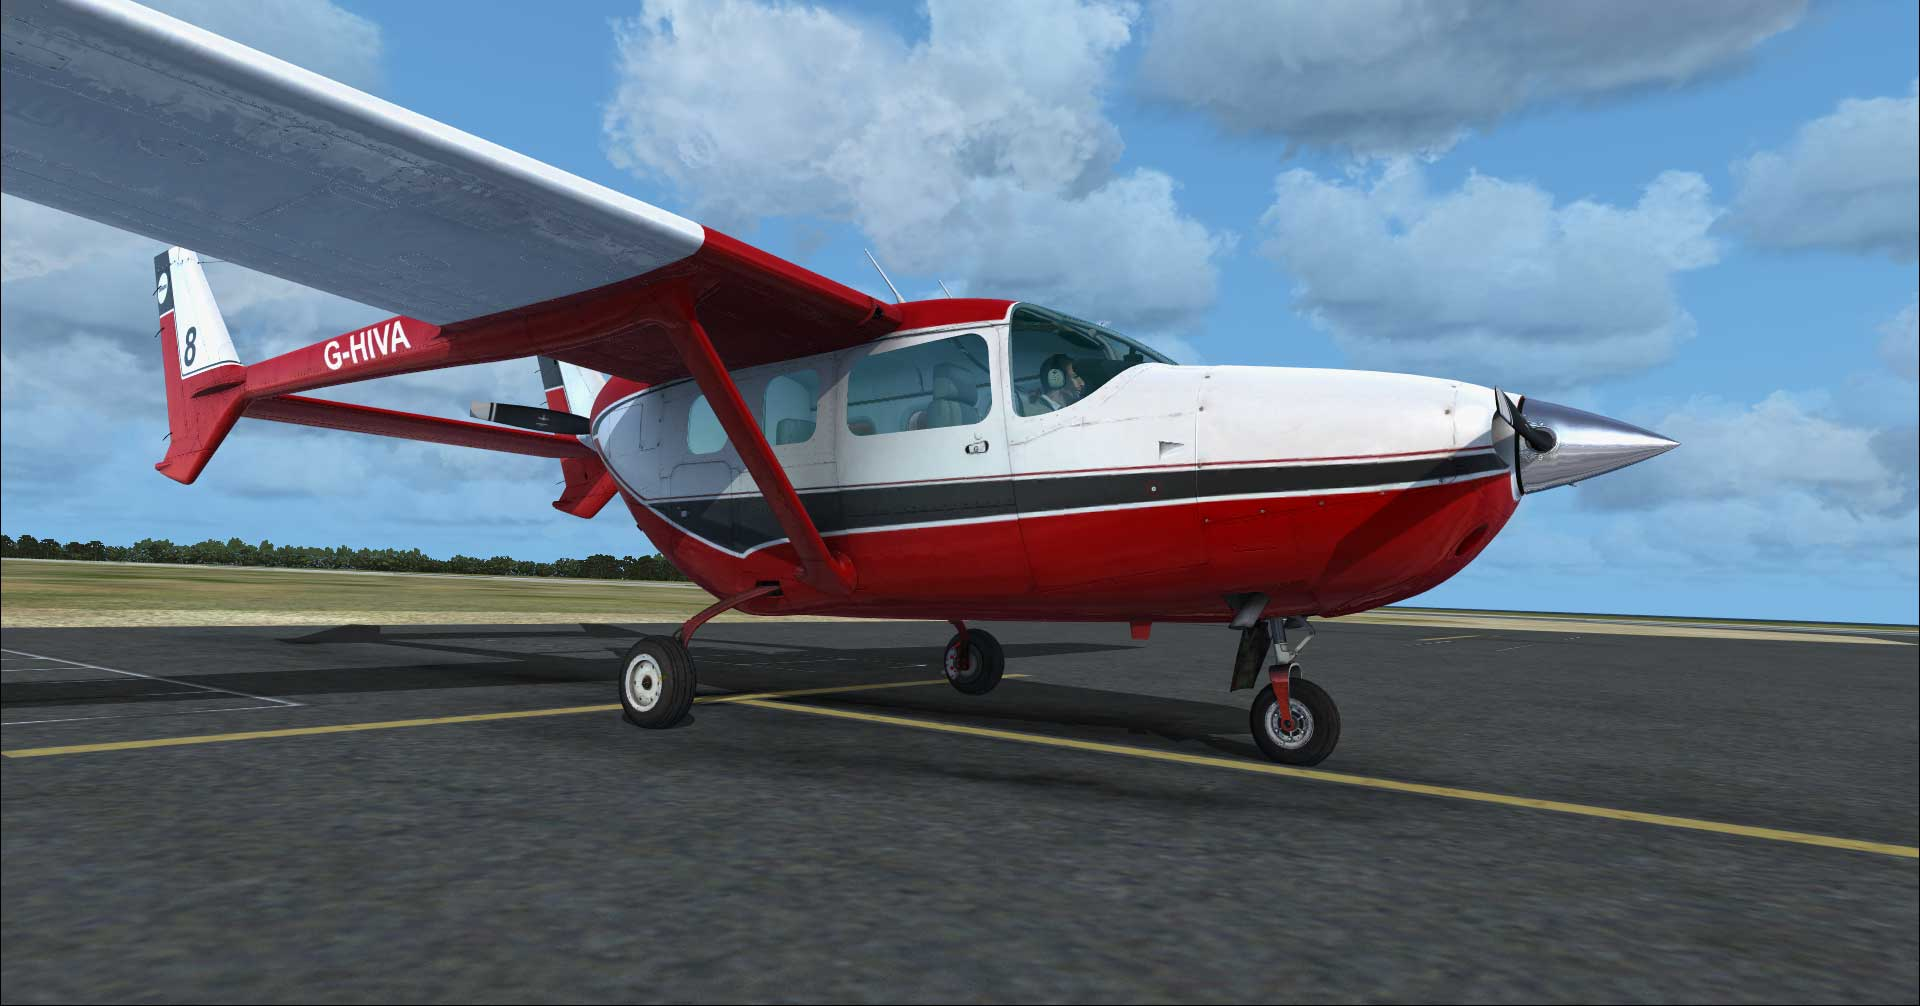 Fs9 337 Skymaster Related Keywords & Suggestions - Fs9 337